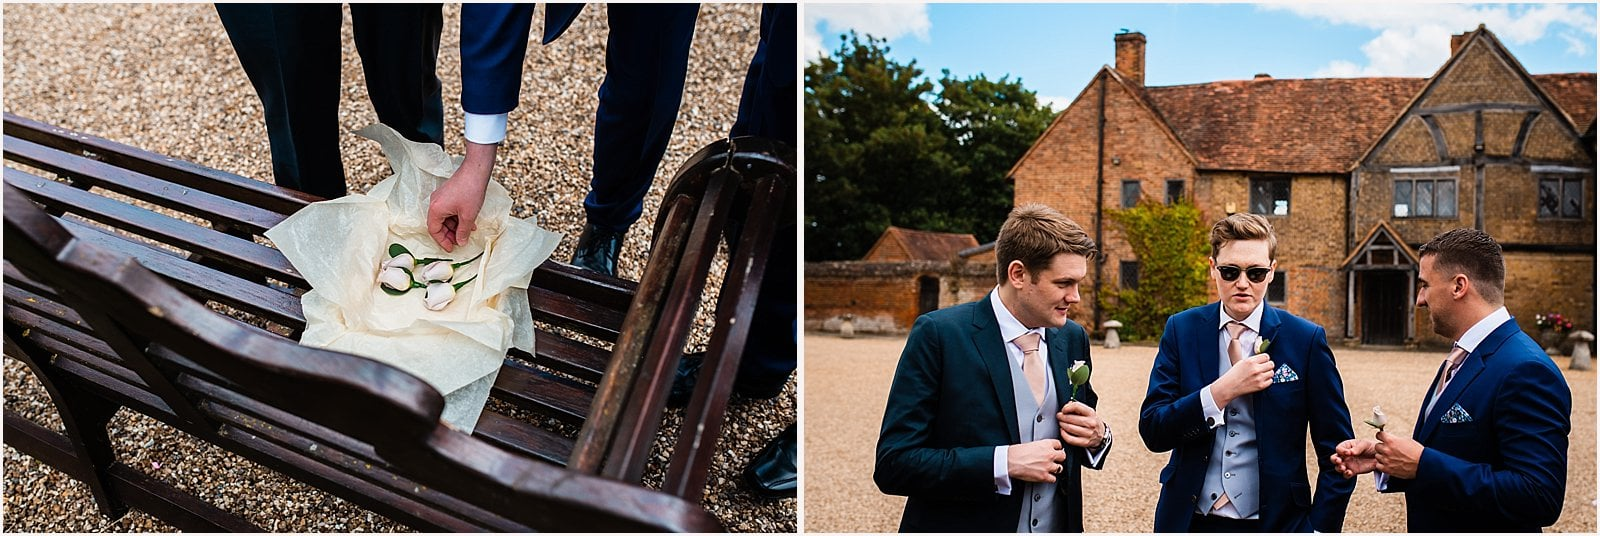 Beautiful Lillibrooke Manor Wedding - Ksenia & Iain 14